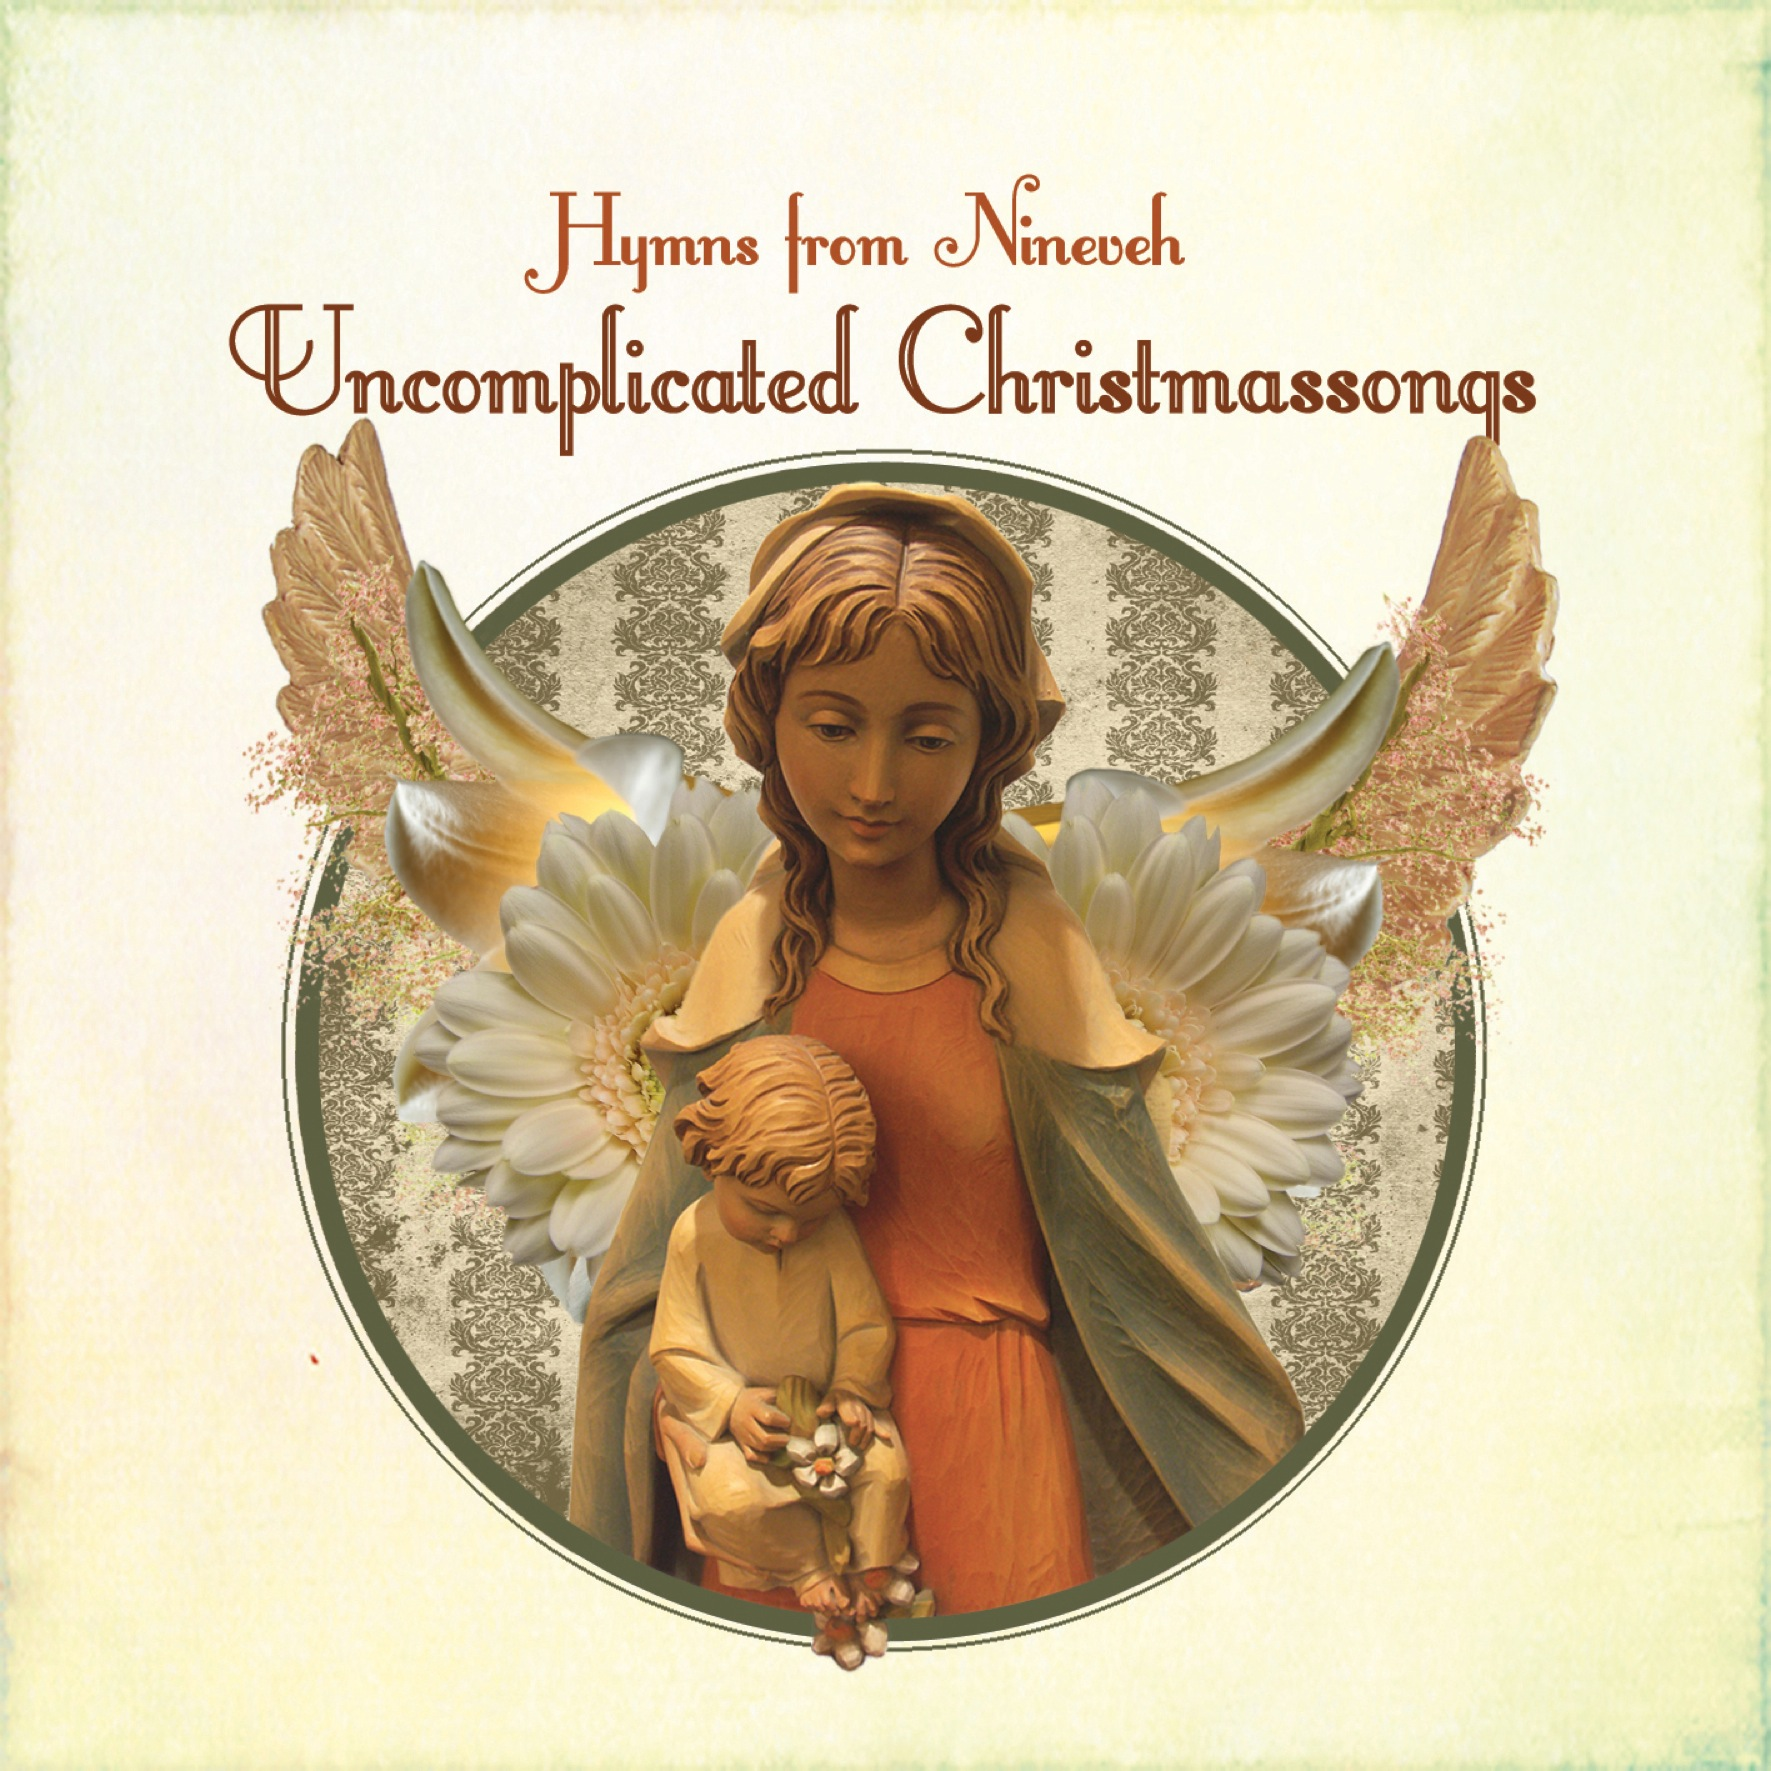 Hymns from Nineveh: Uncomplicated Christmassongs EP